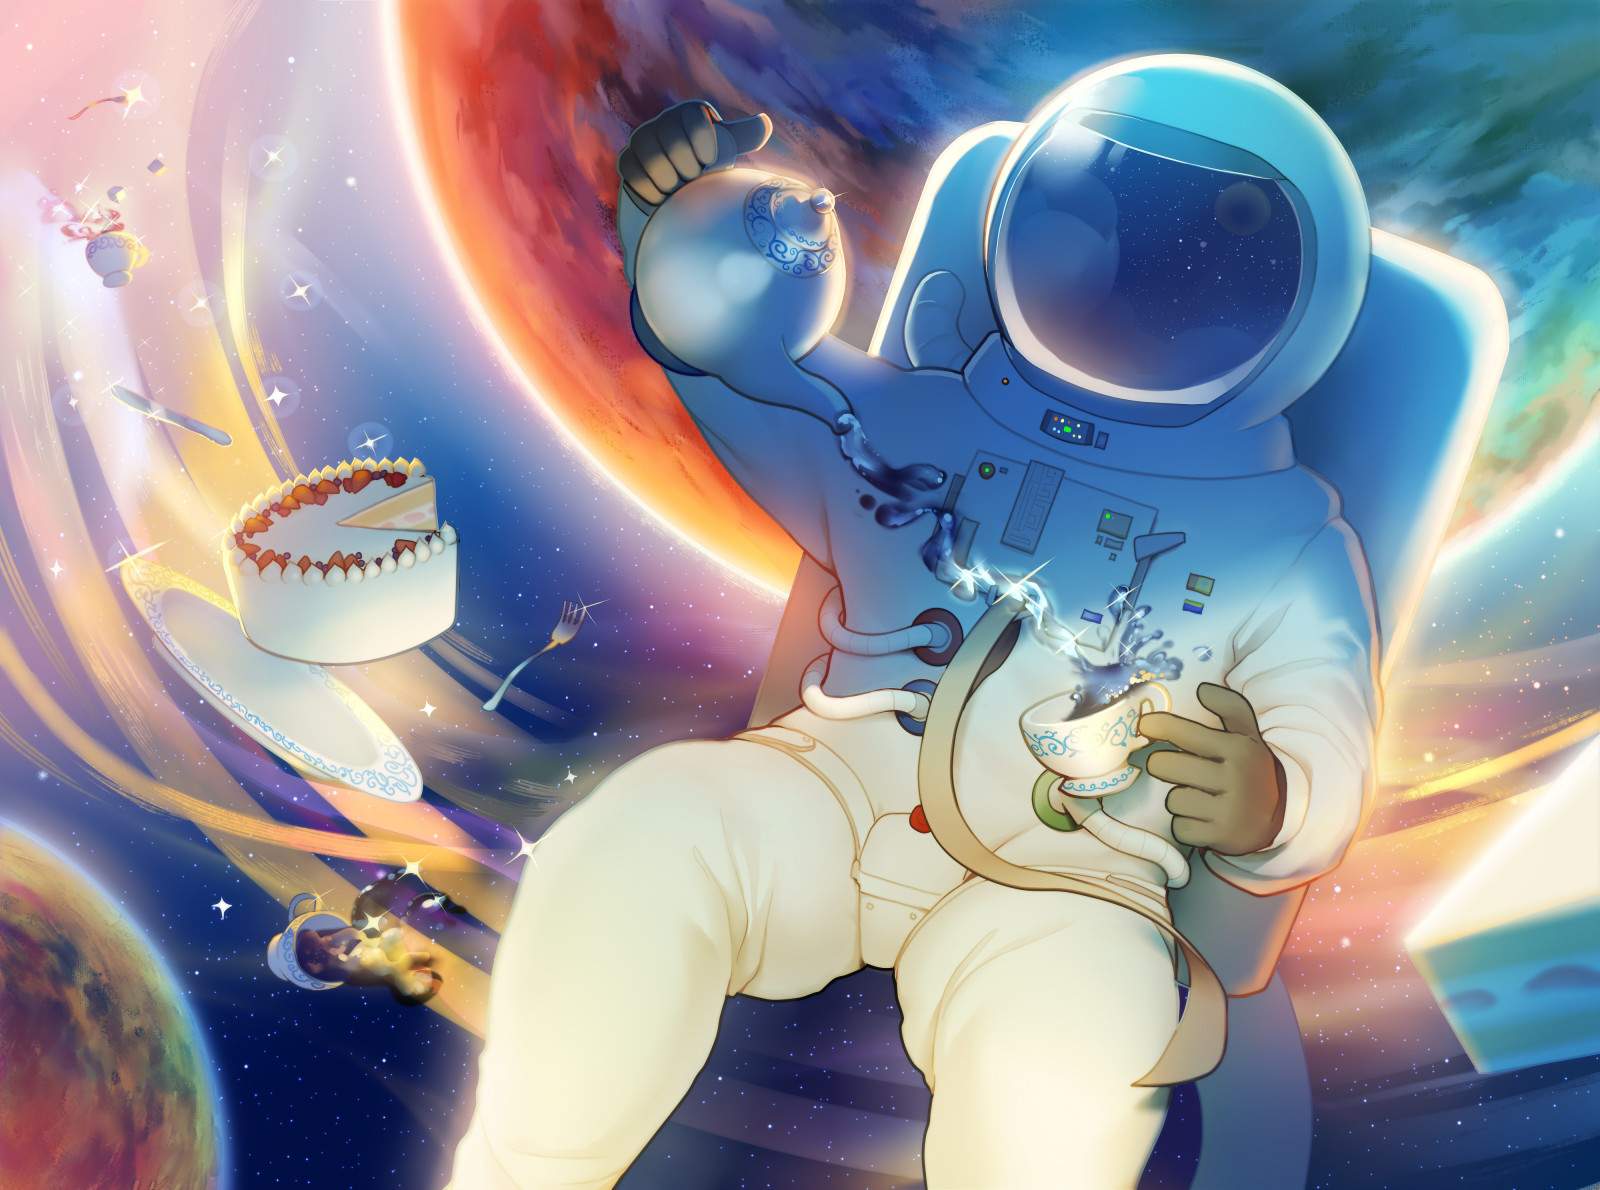 Digital painting of an astronaut pouring tea while floating between glowing planets